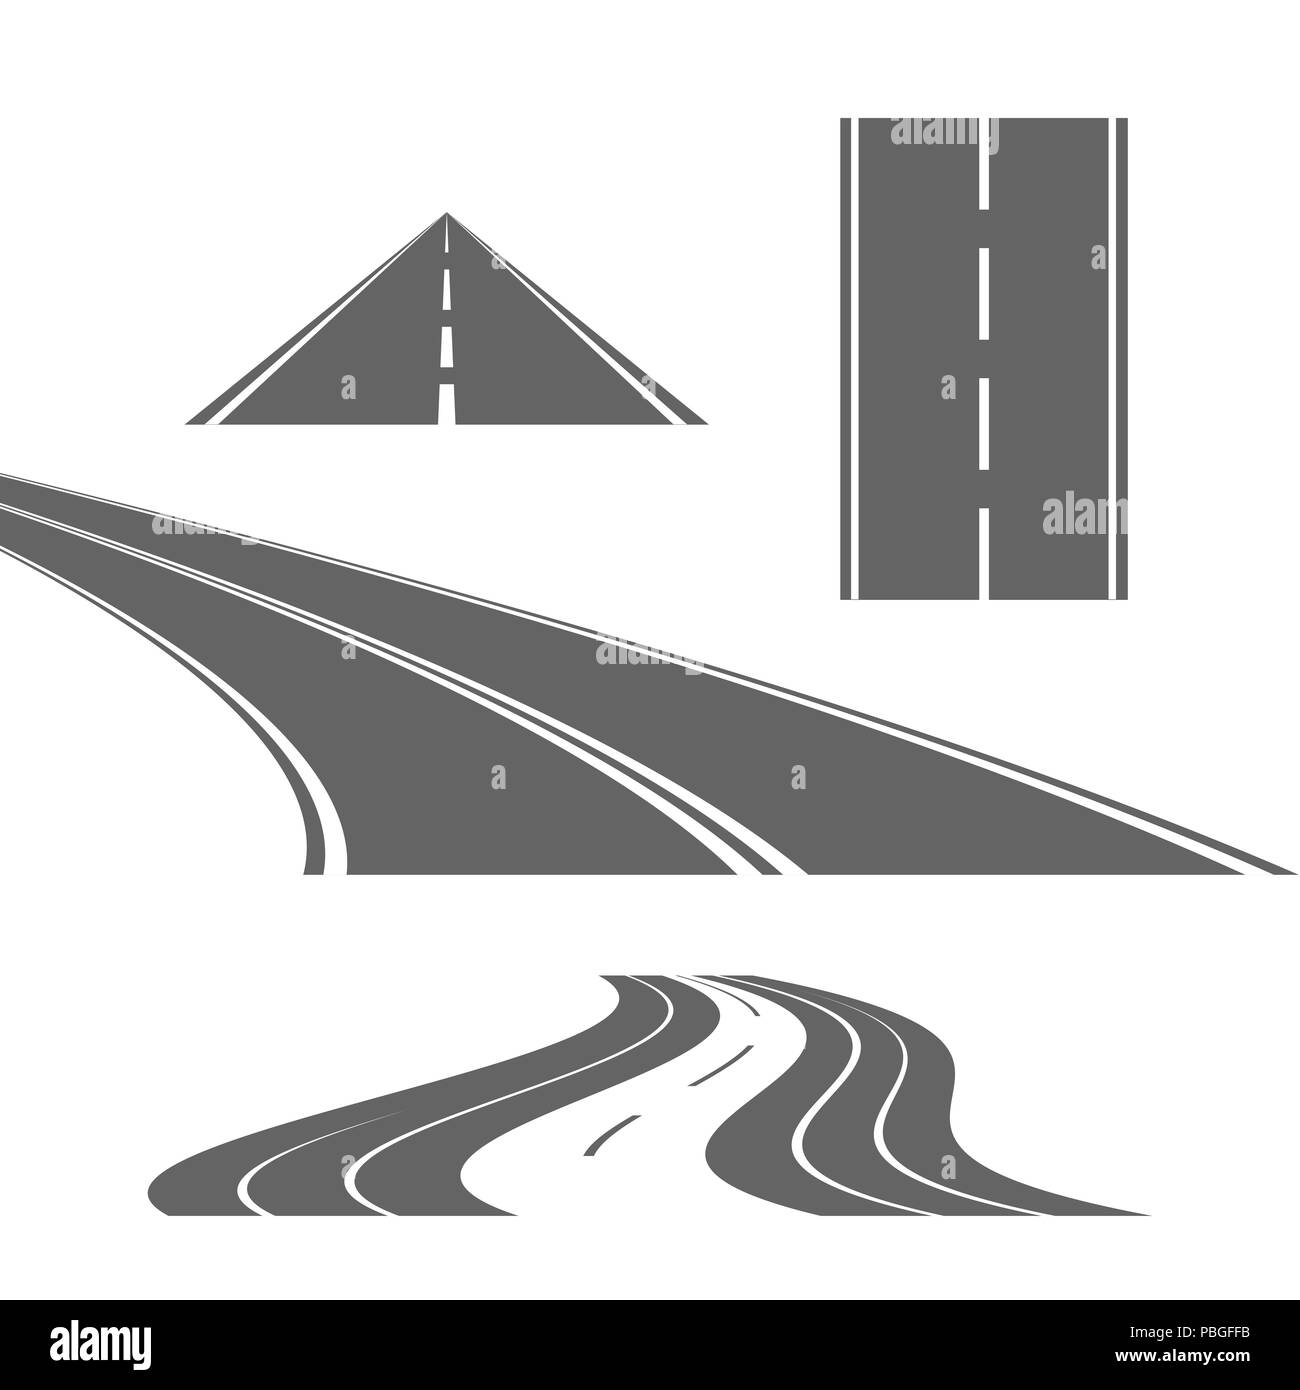 Curve and Straight Roads Isolated on White Background. Design Elements Set for Web Design, Banners, Presentations or Business Cards, Flyers, Brochures - Stock Image